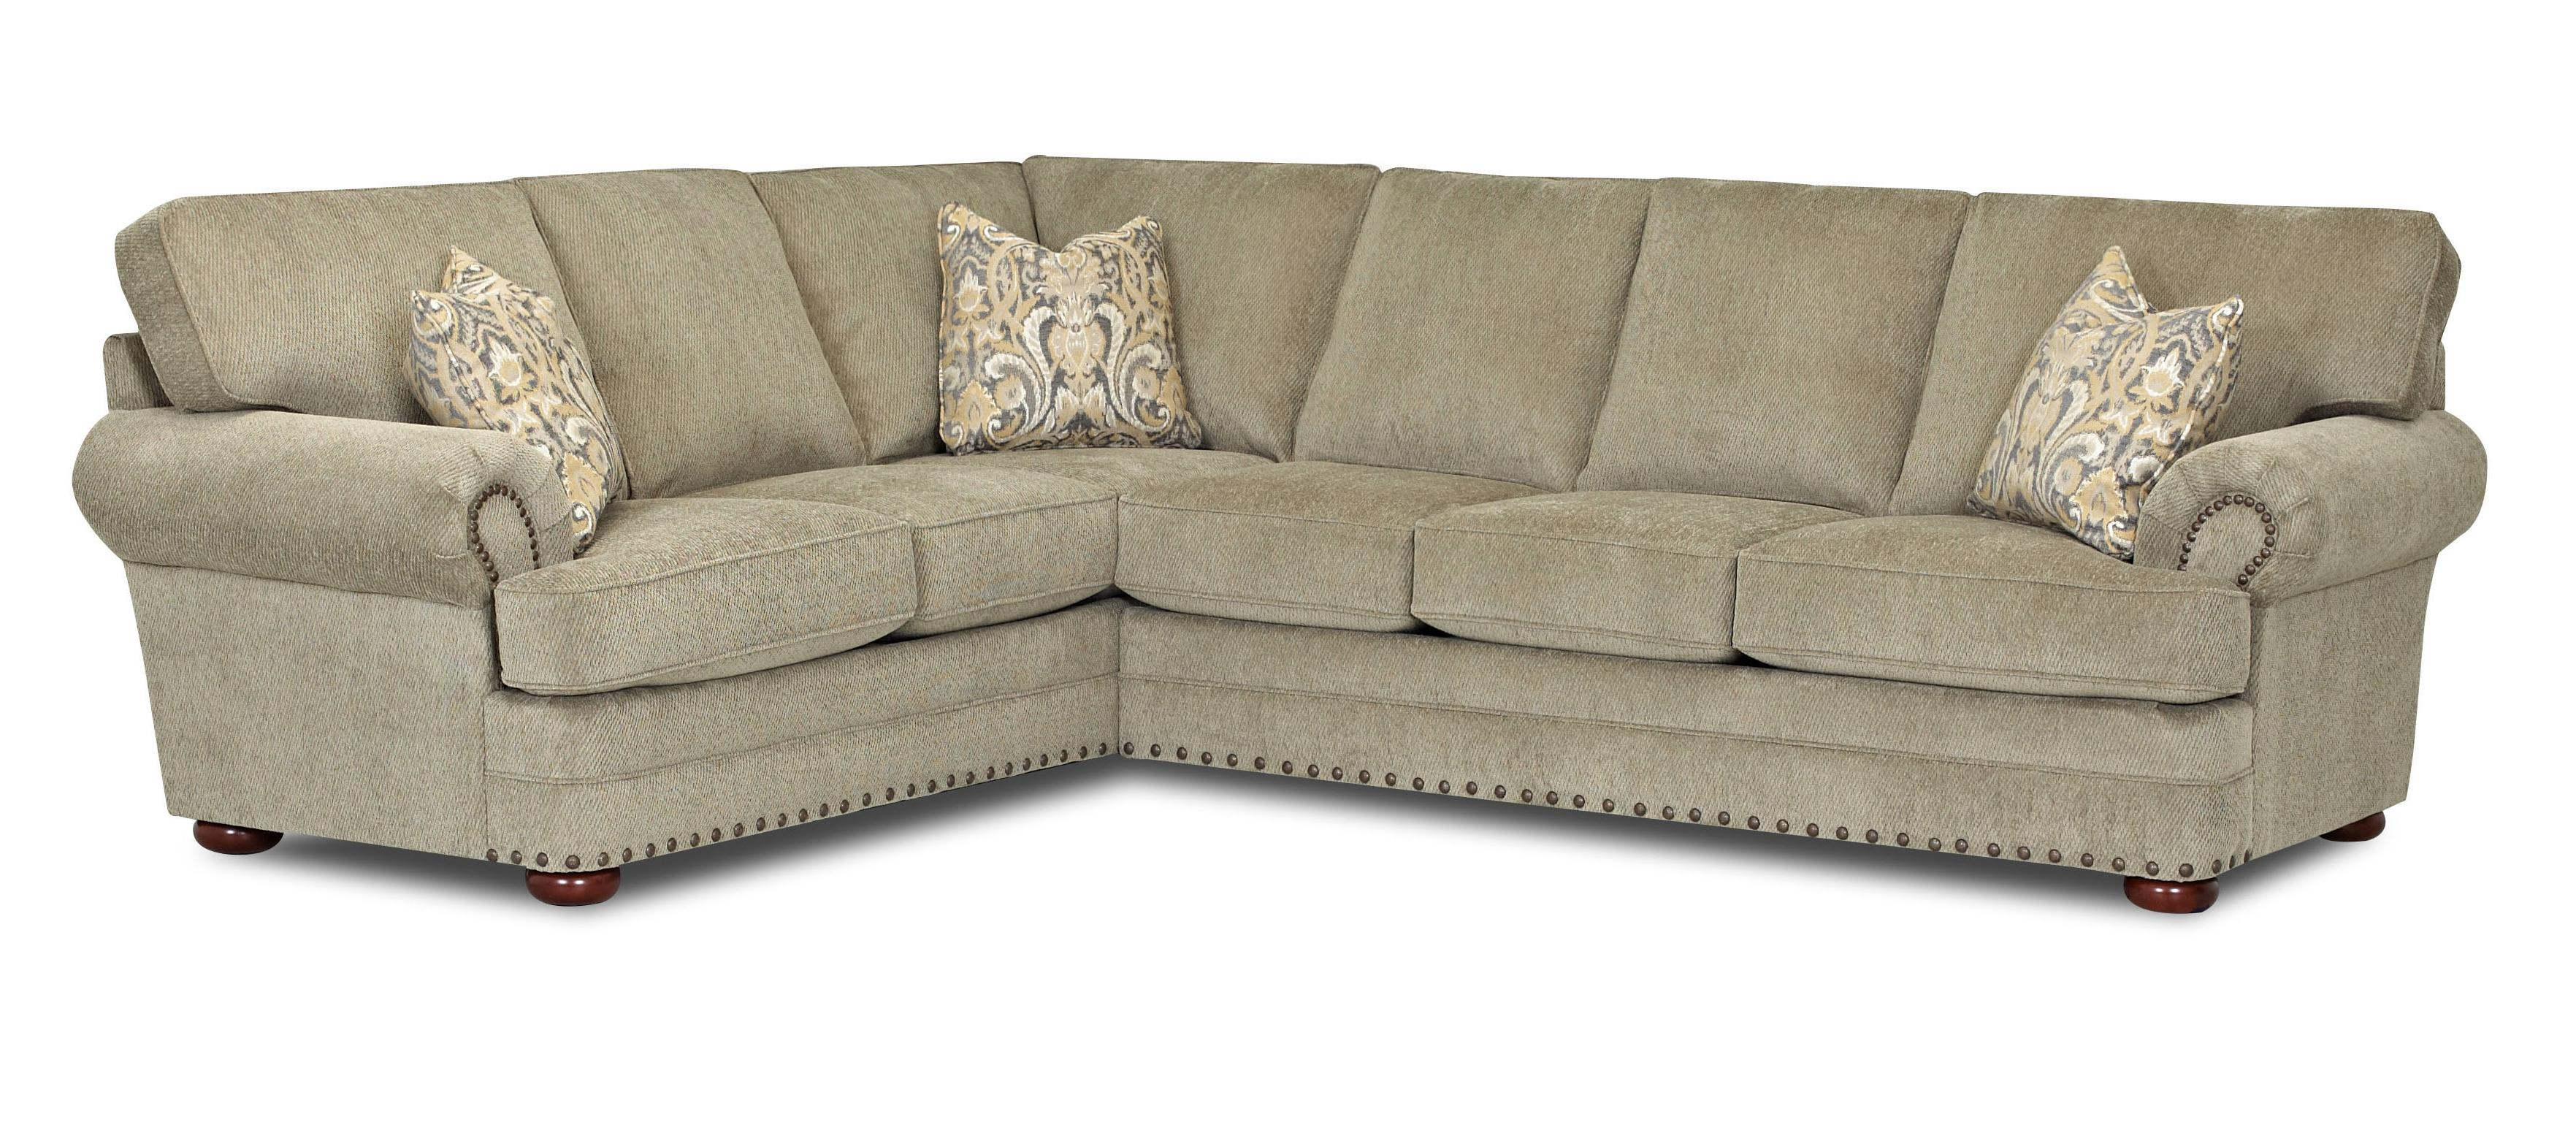 Traditional 2 piece sectional sofa by klaussner wolf and for Sectional sofas wolf furniture